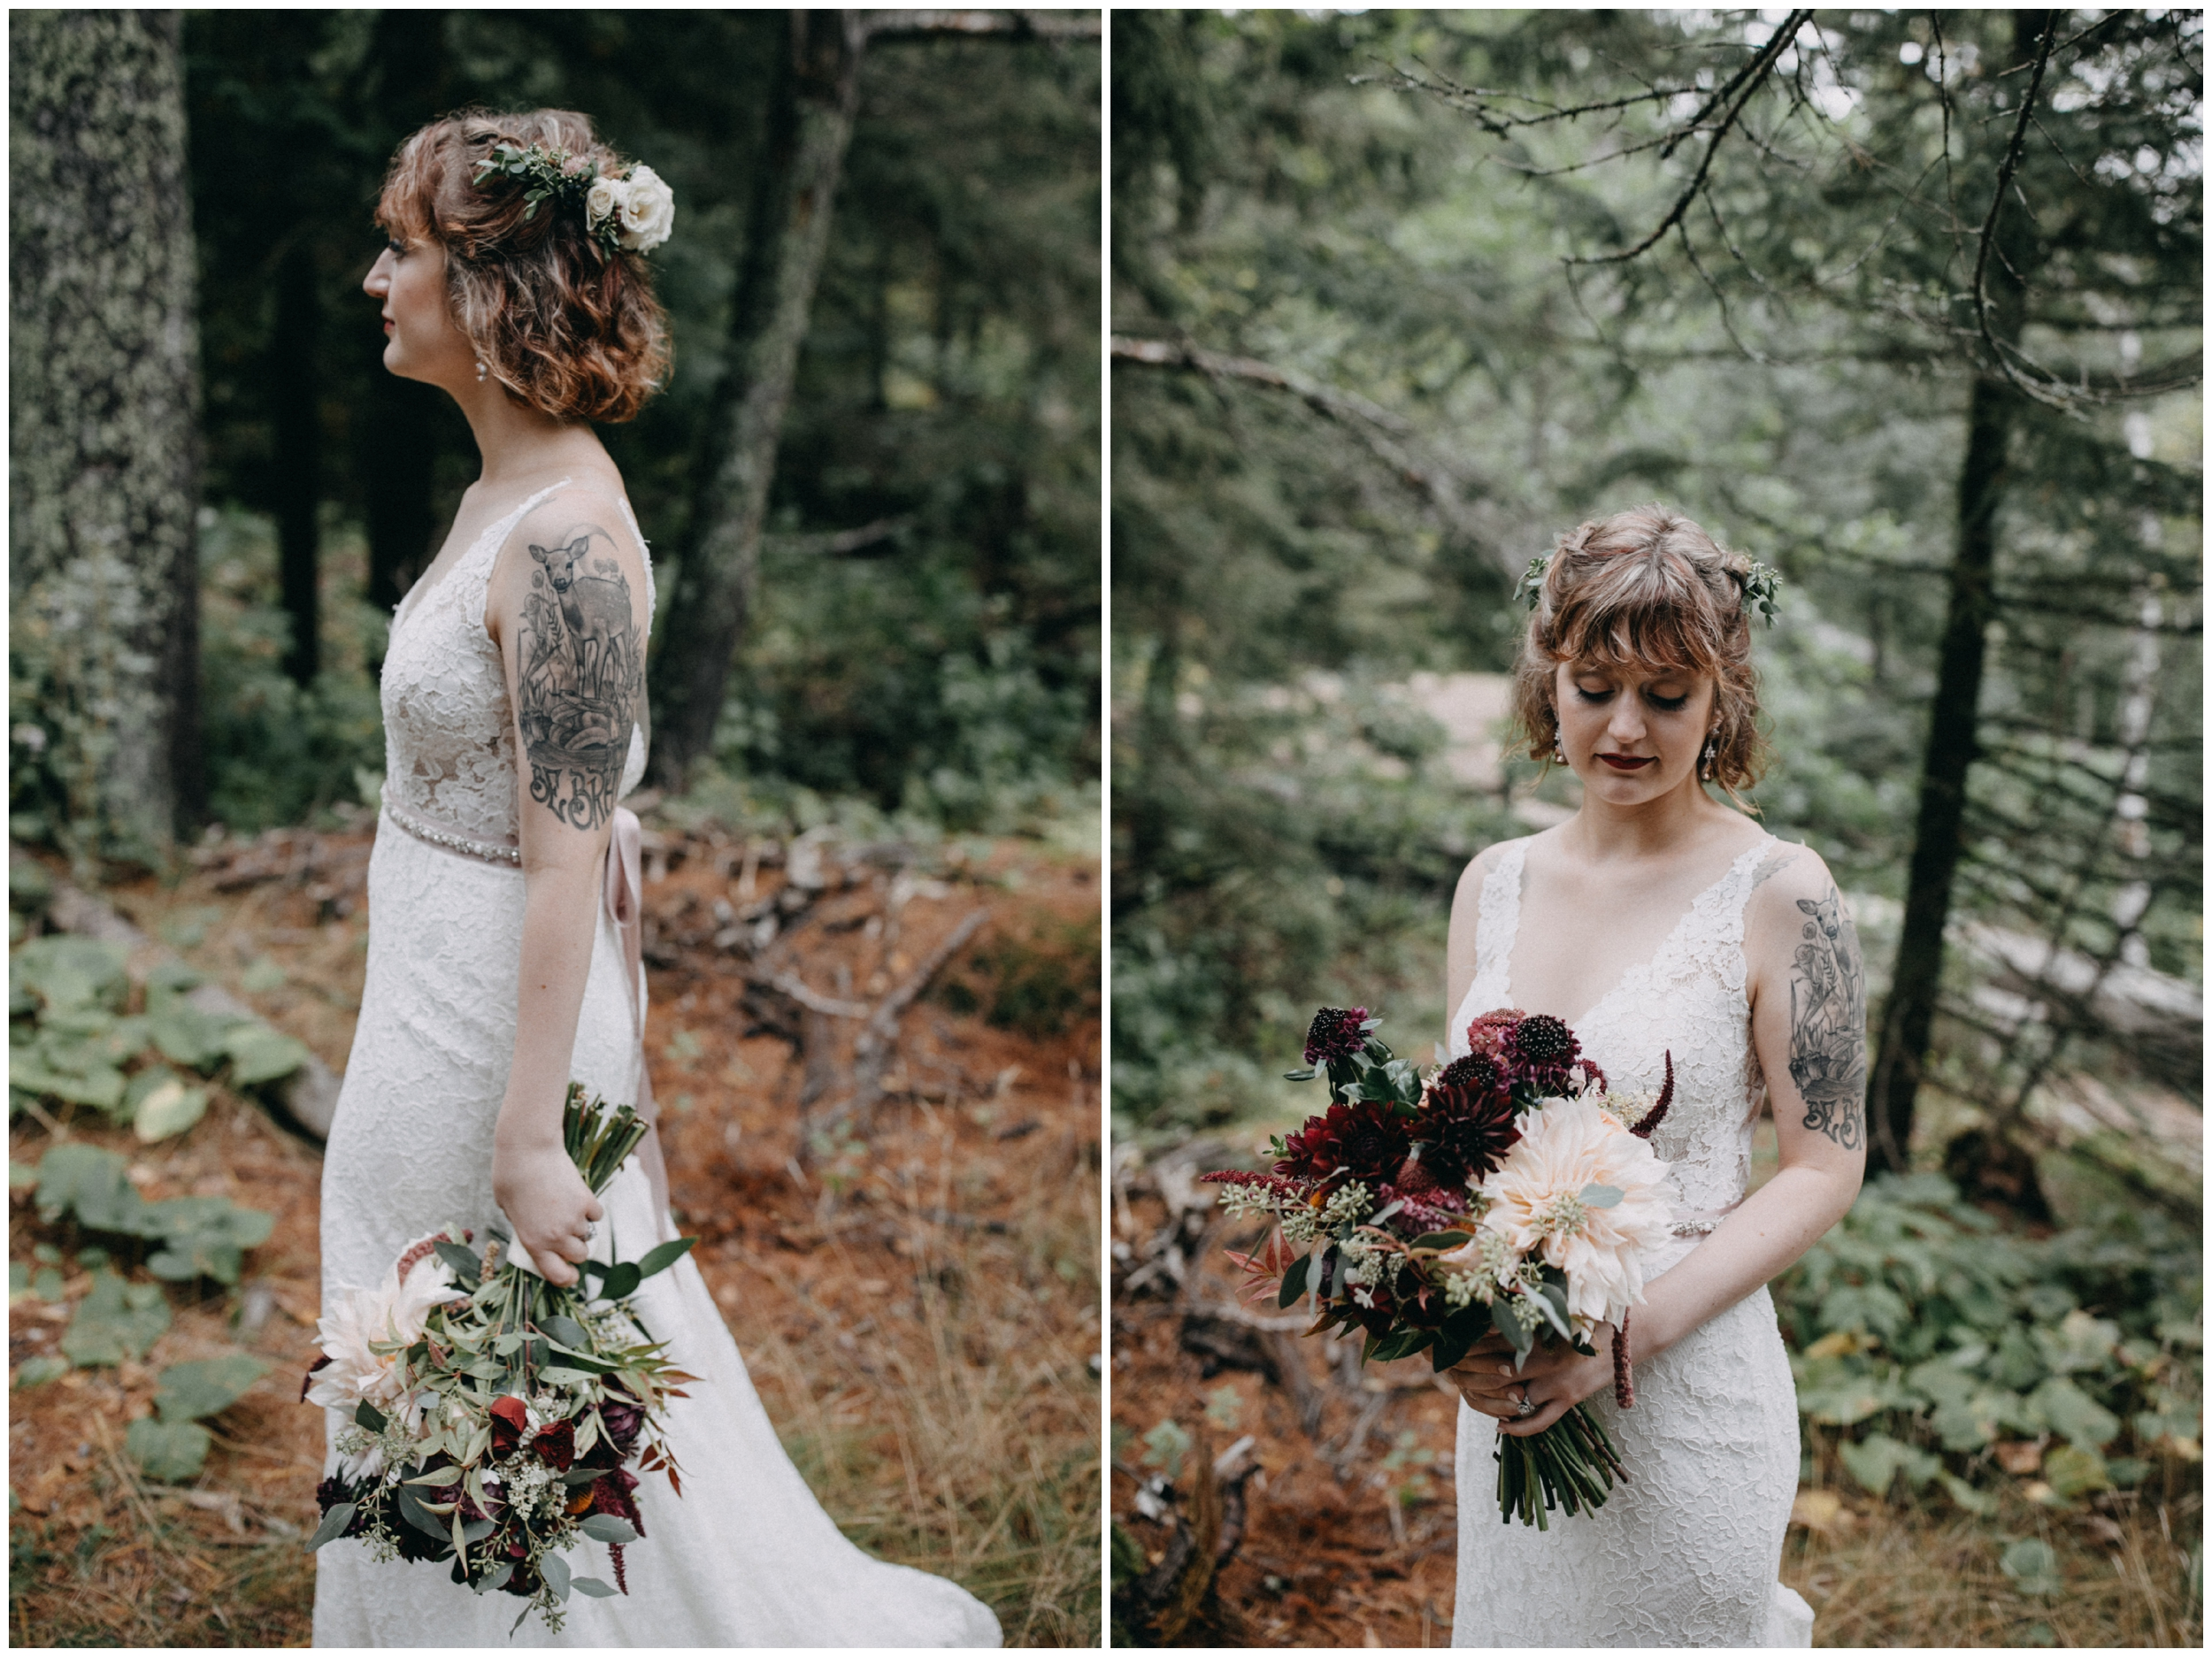 Eclectic and edgy bride at wedding in the woods